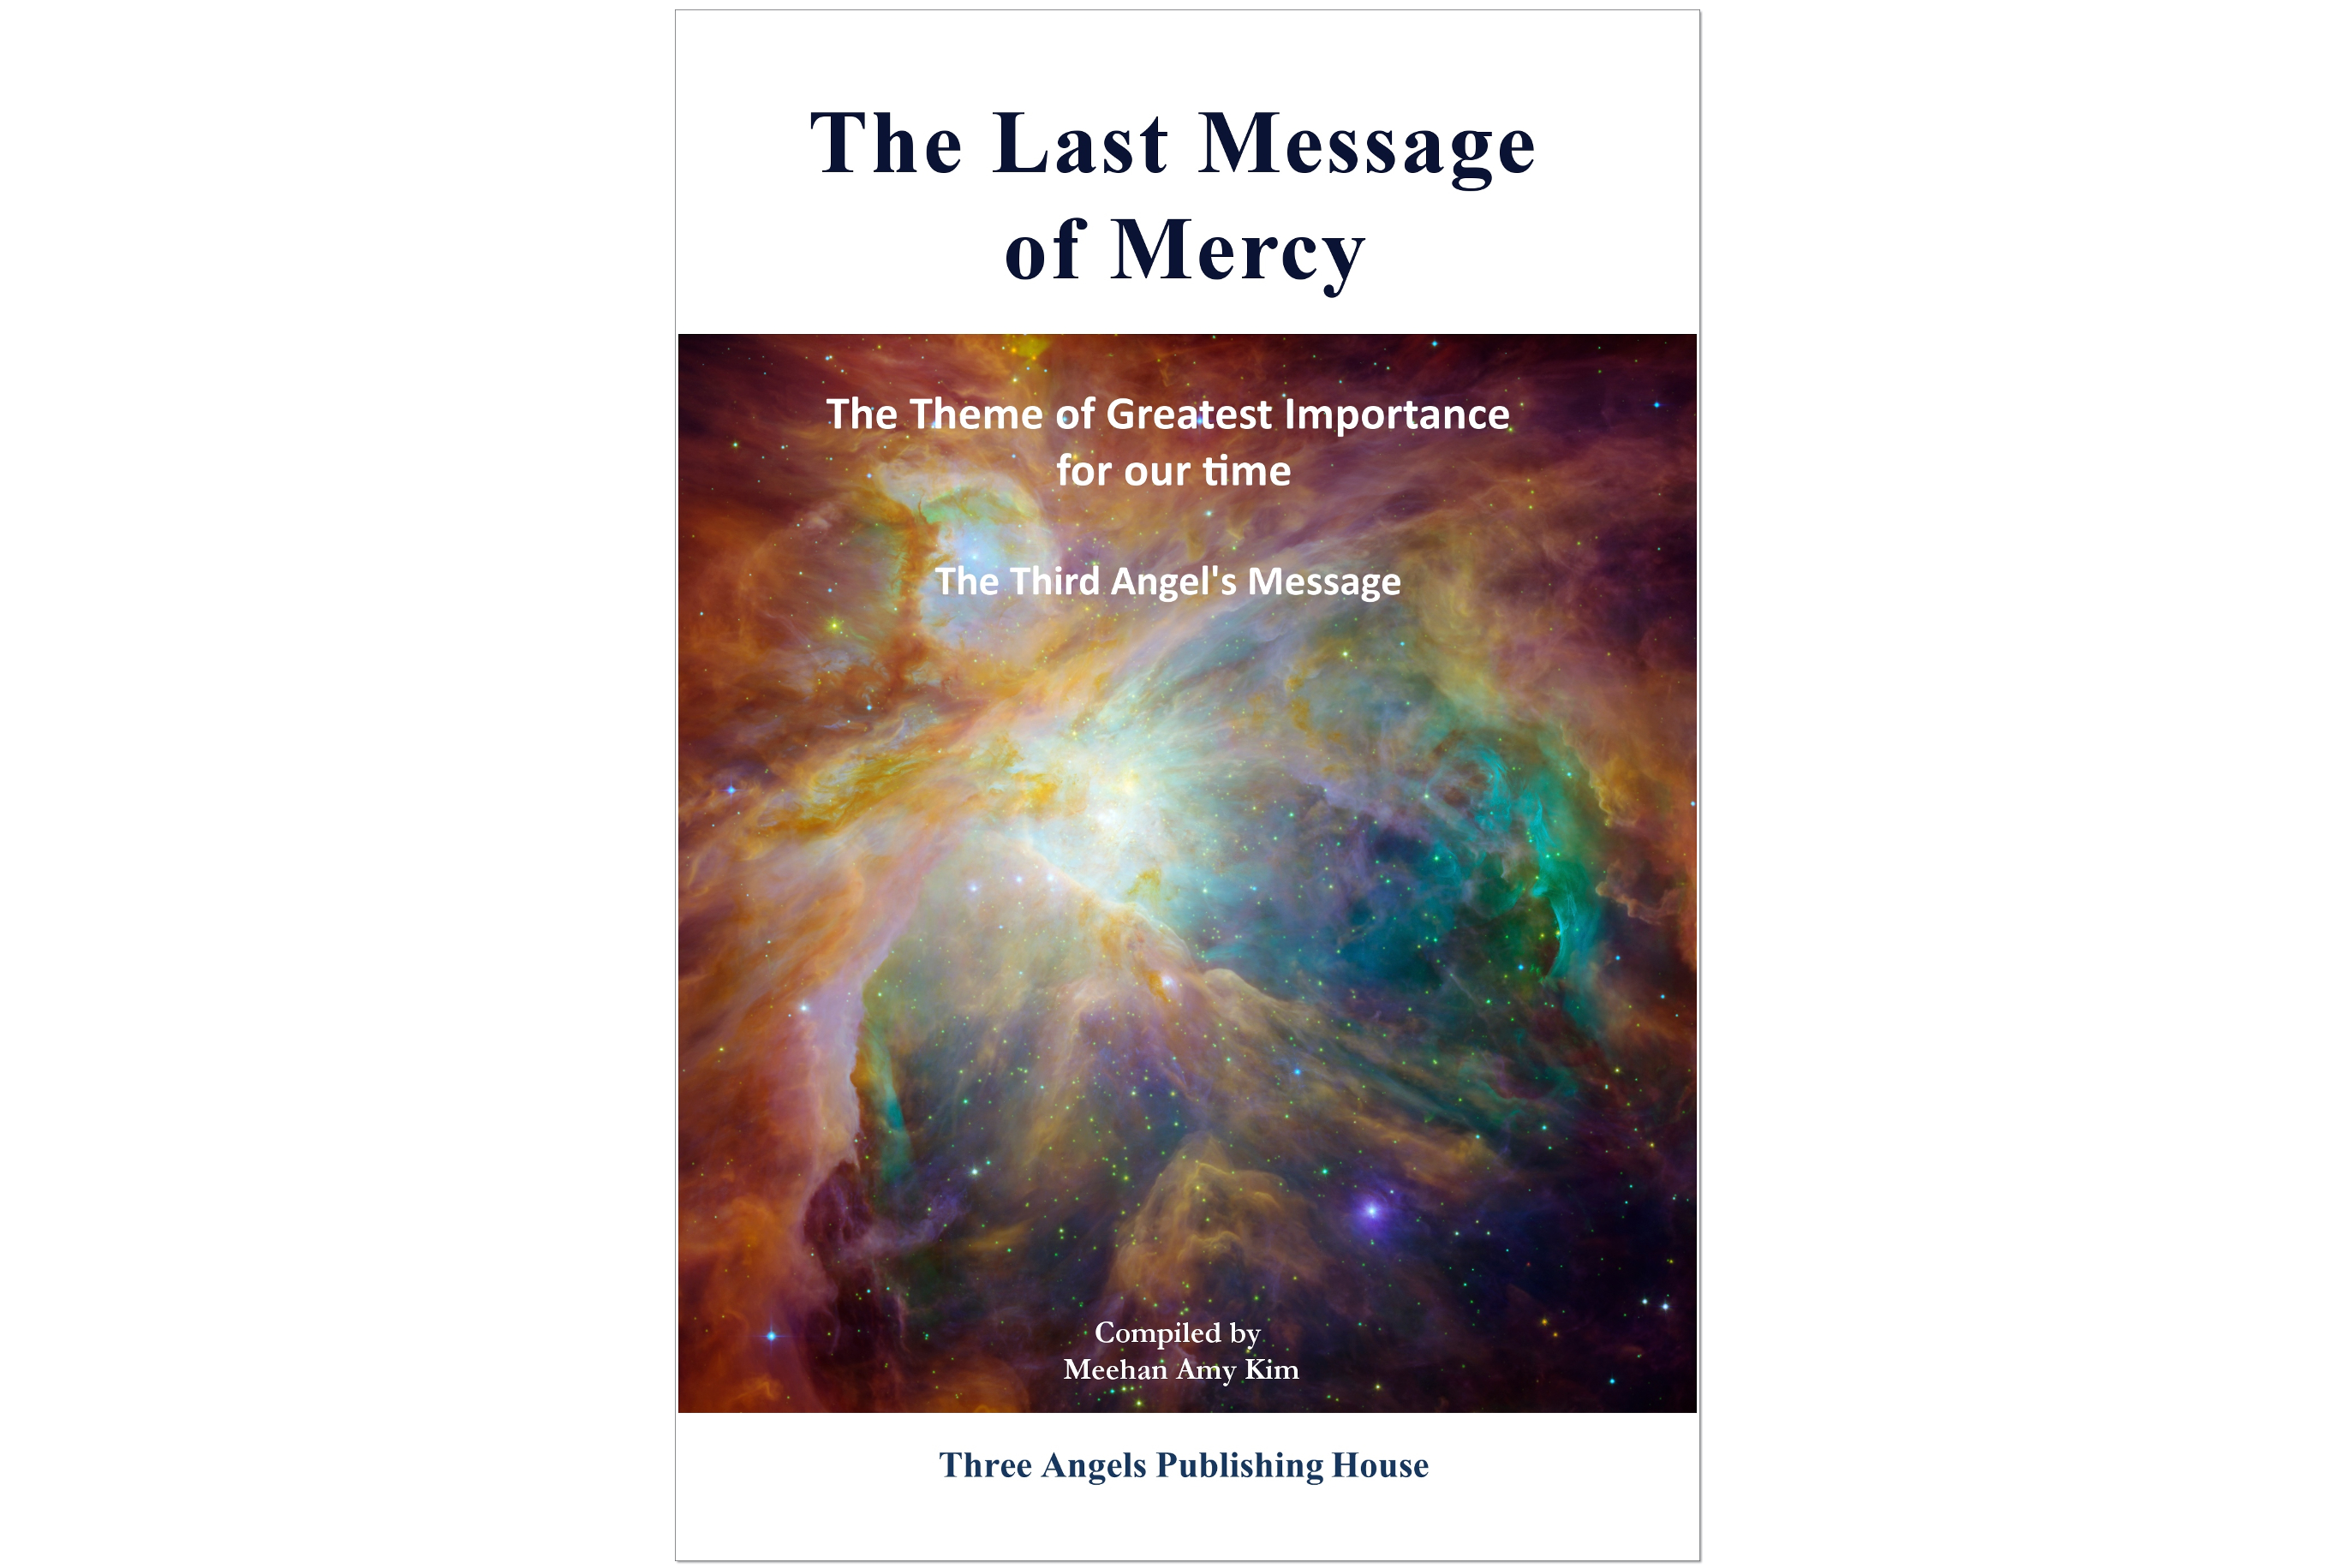 The Last Message of Mercy Ebook